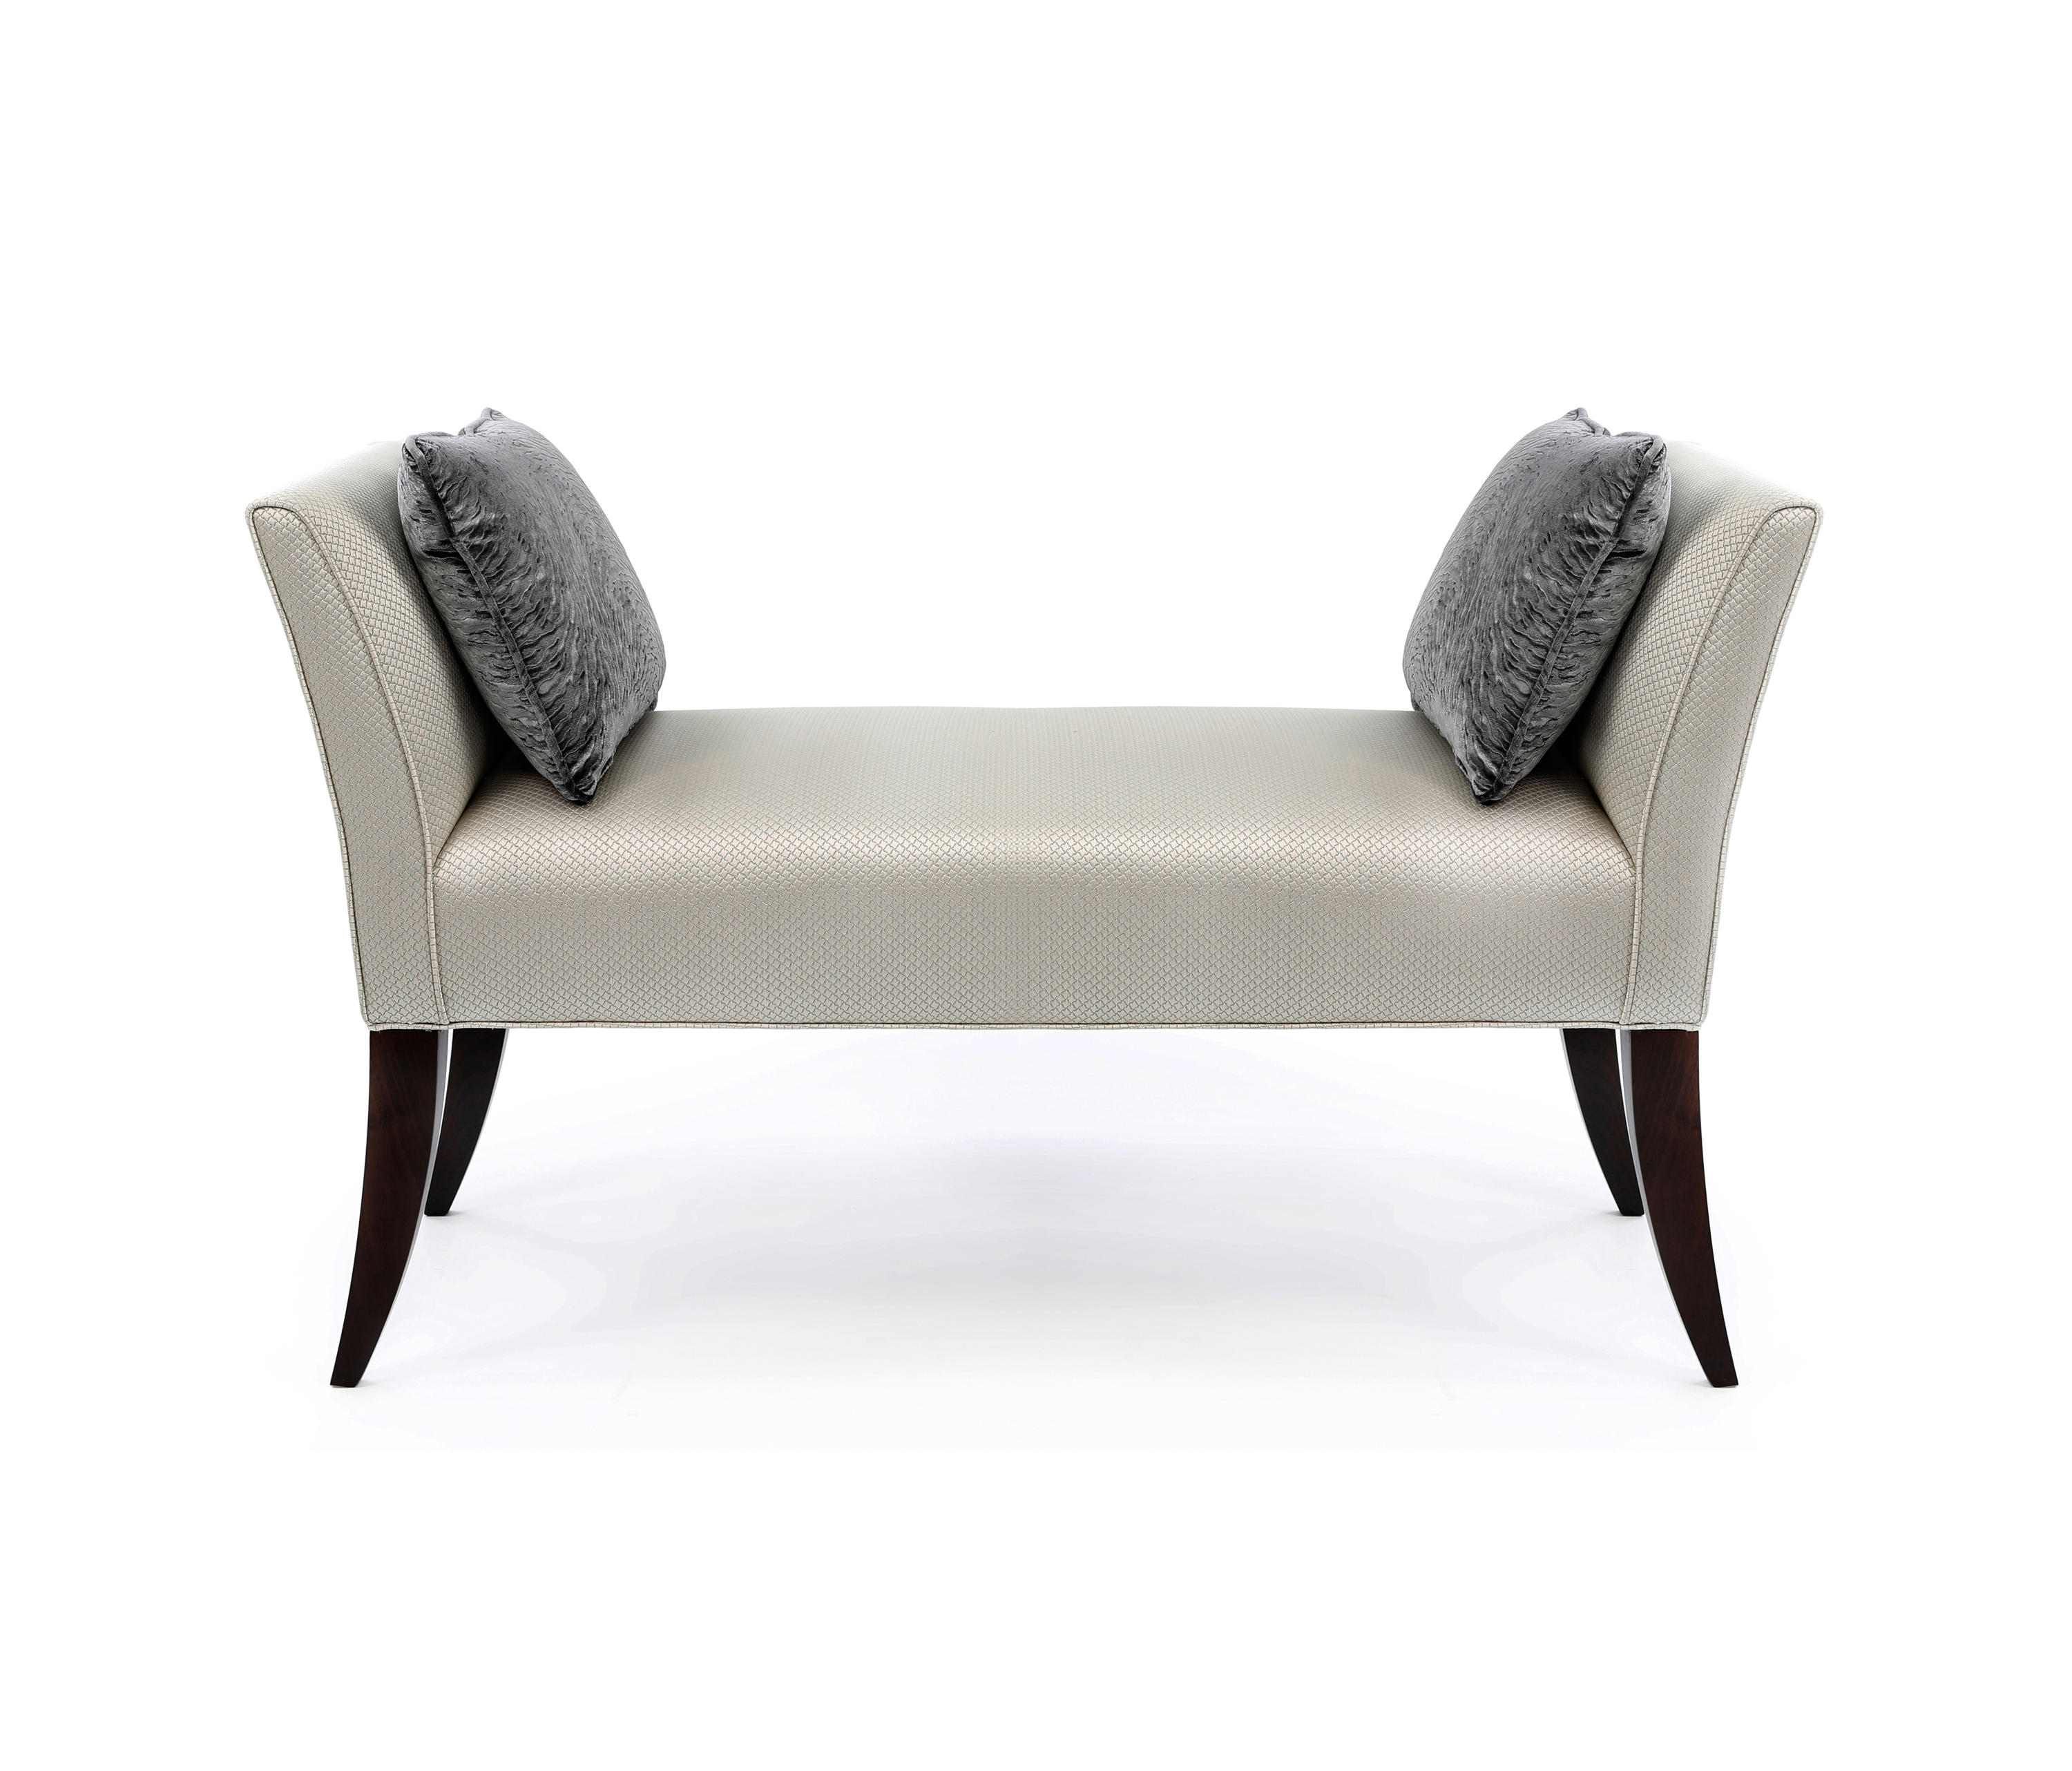 Excellent Goya Benches From The Sofa Chair Company Ltd Architonic Pabps2019 Chair Design Images Pabps2019Com